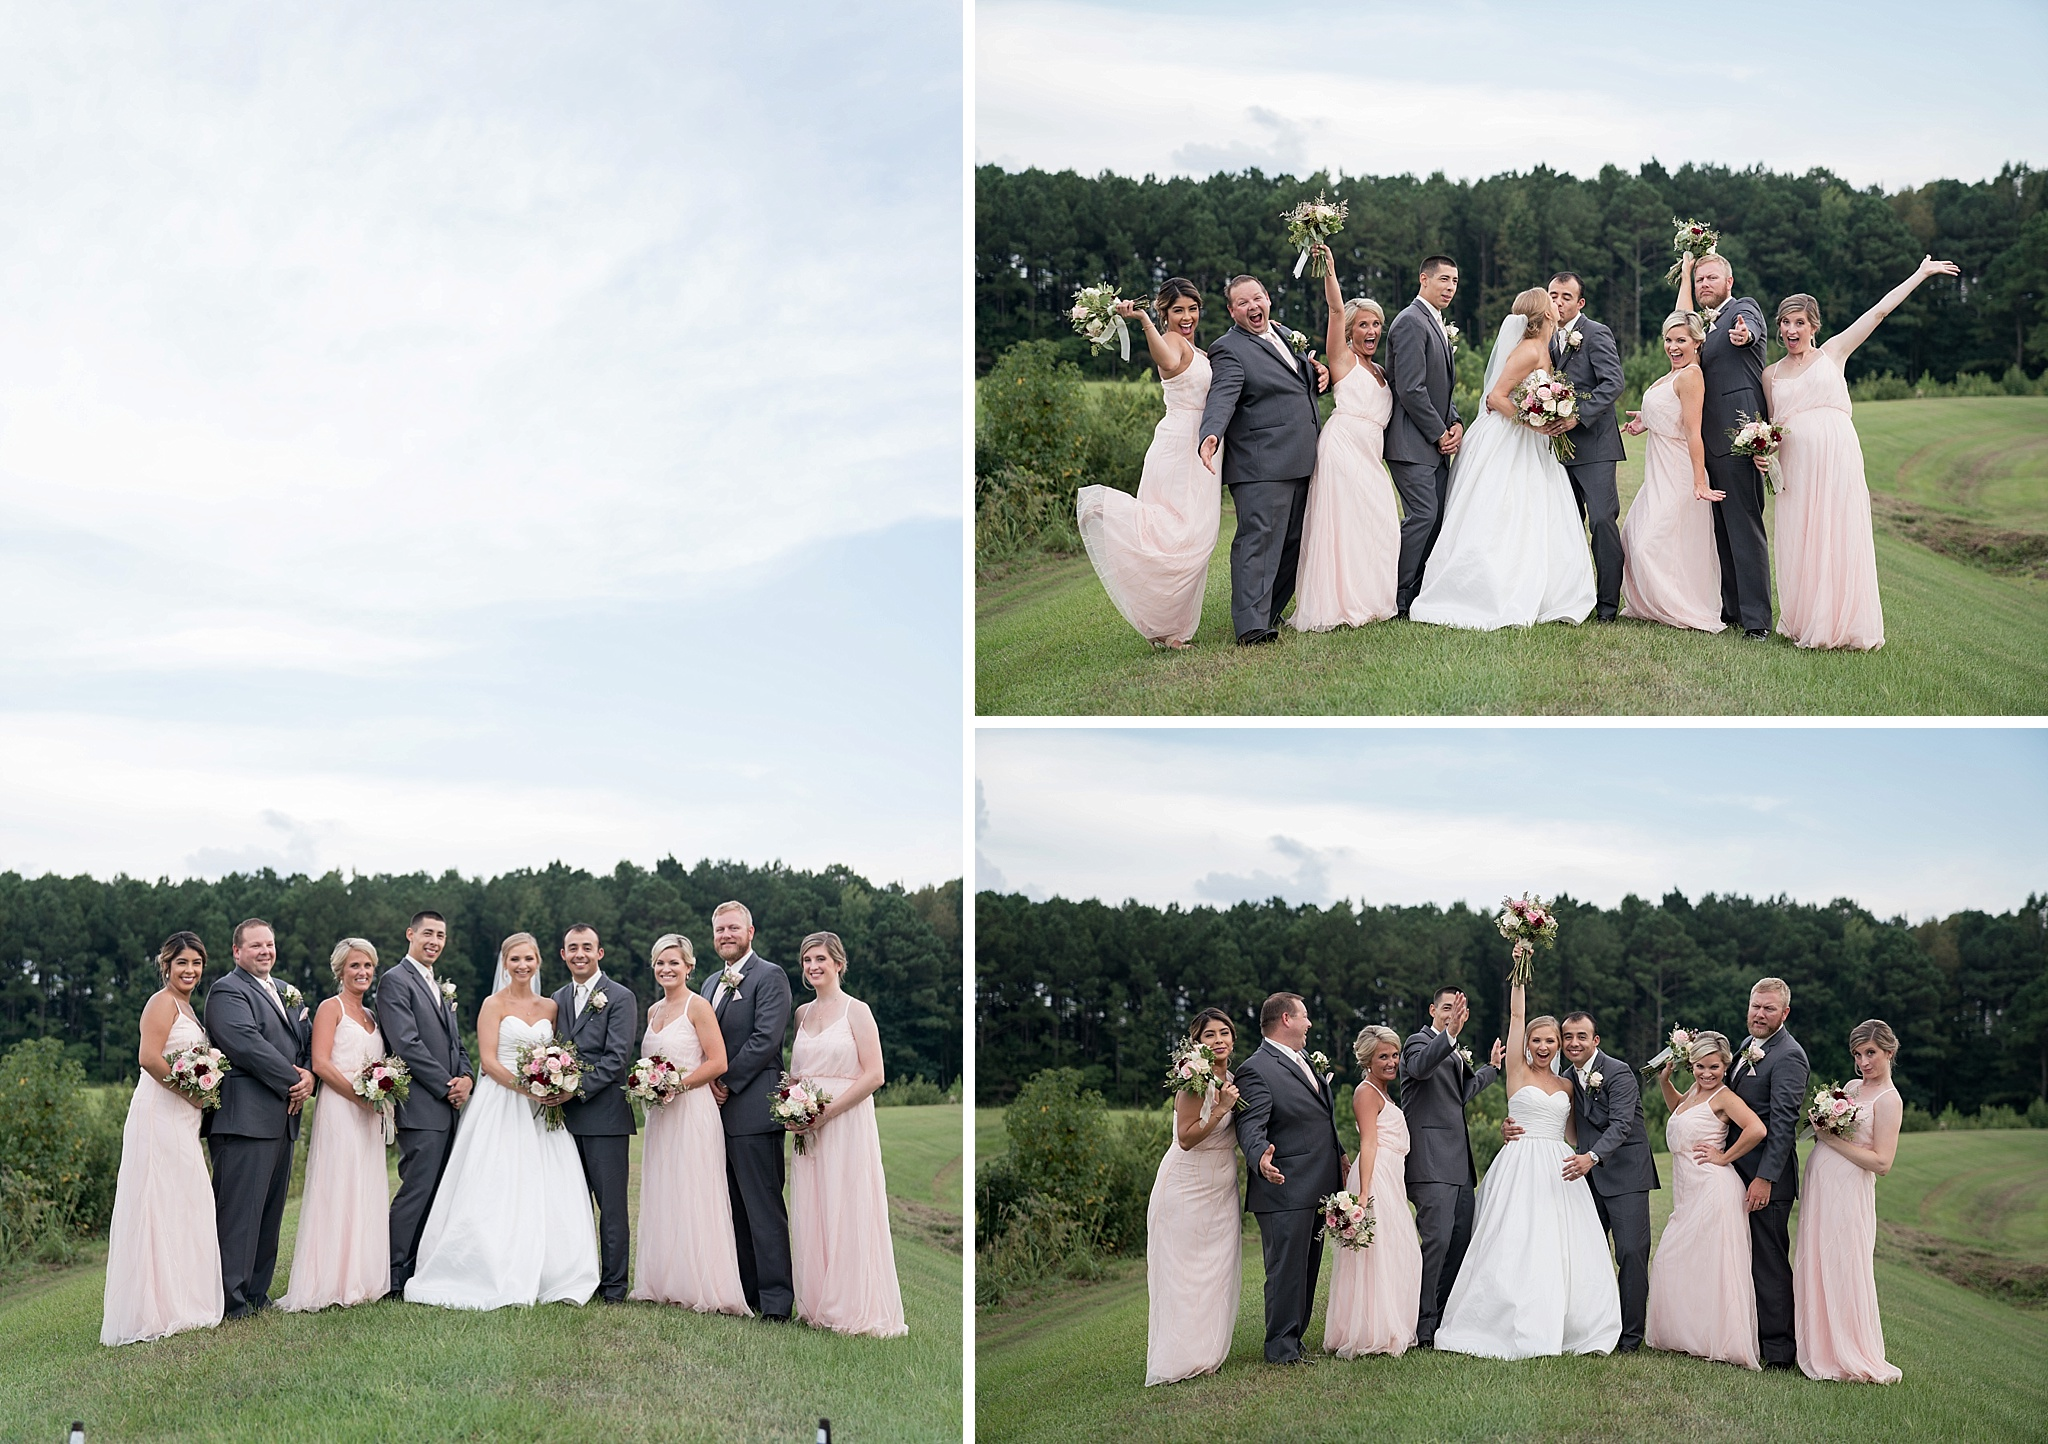 Williamston-NC-Wedding-Photographer-209.jpg